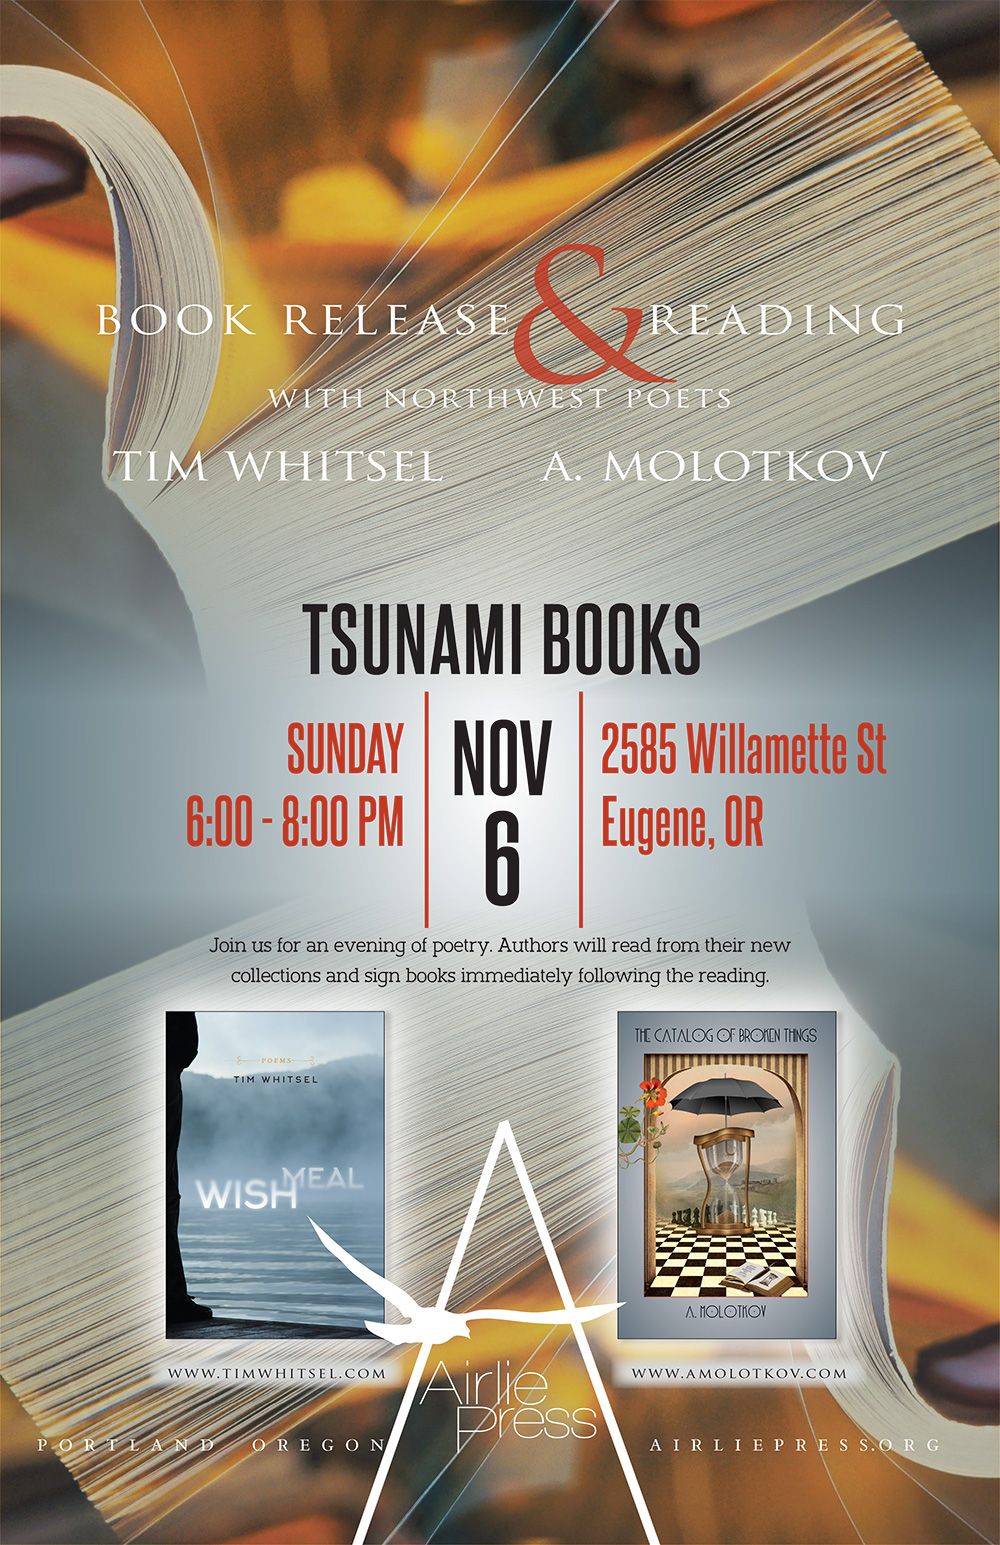 Book release poster